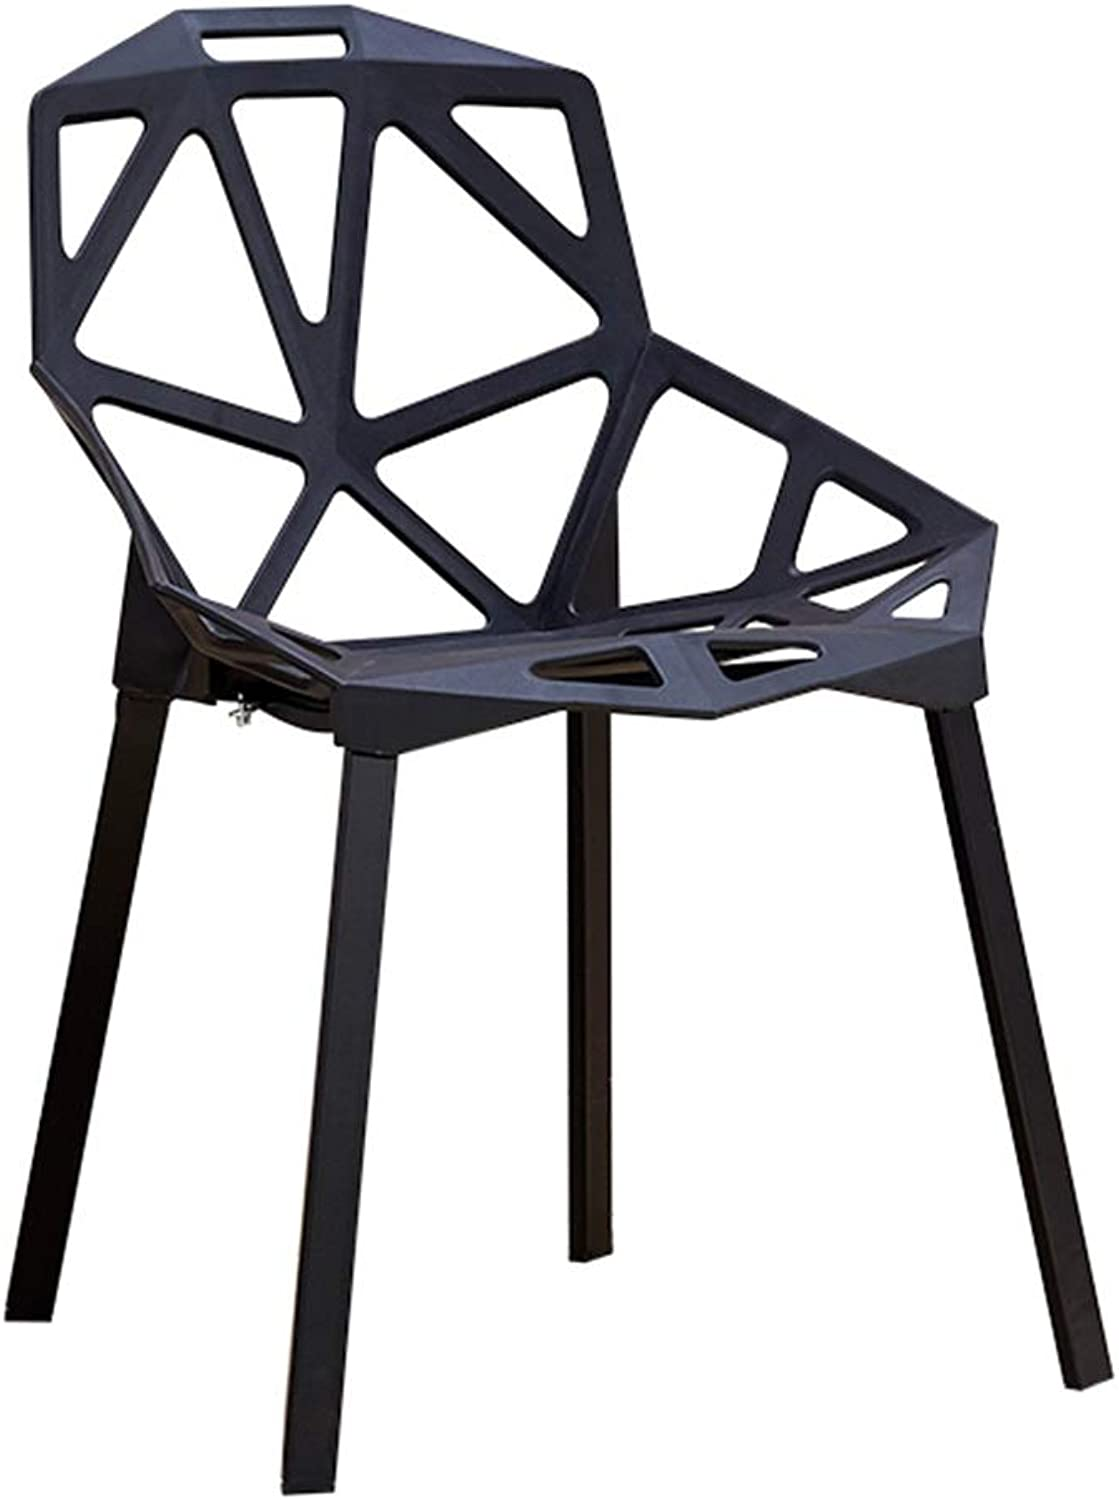 Plastic Chair, Home Back Plastic Personality Tea Shop Table and Chairs Dining Chair Indoor and Outdoor Multi-Scene Use (color   Black)